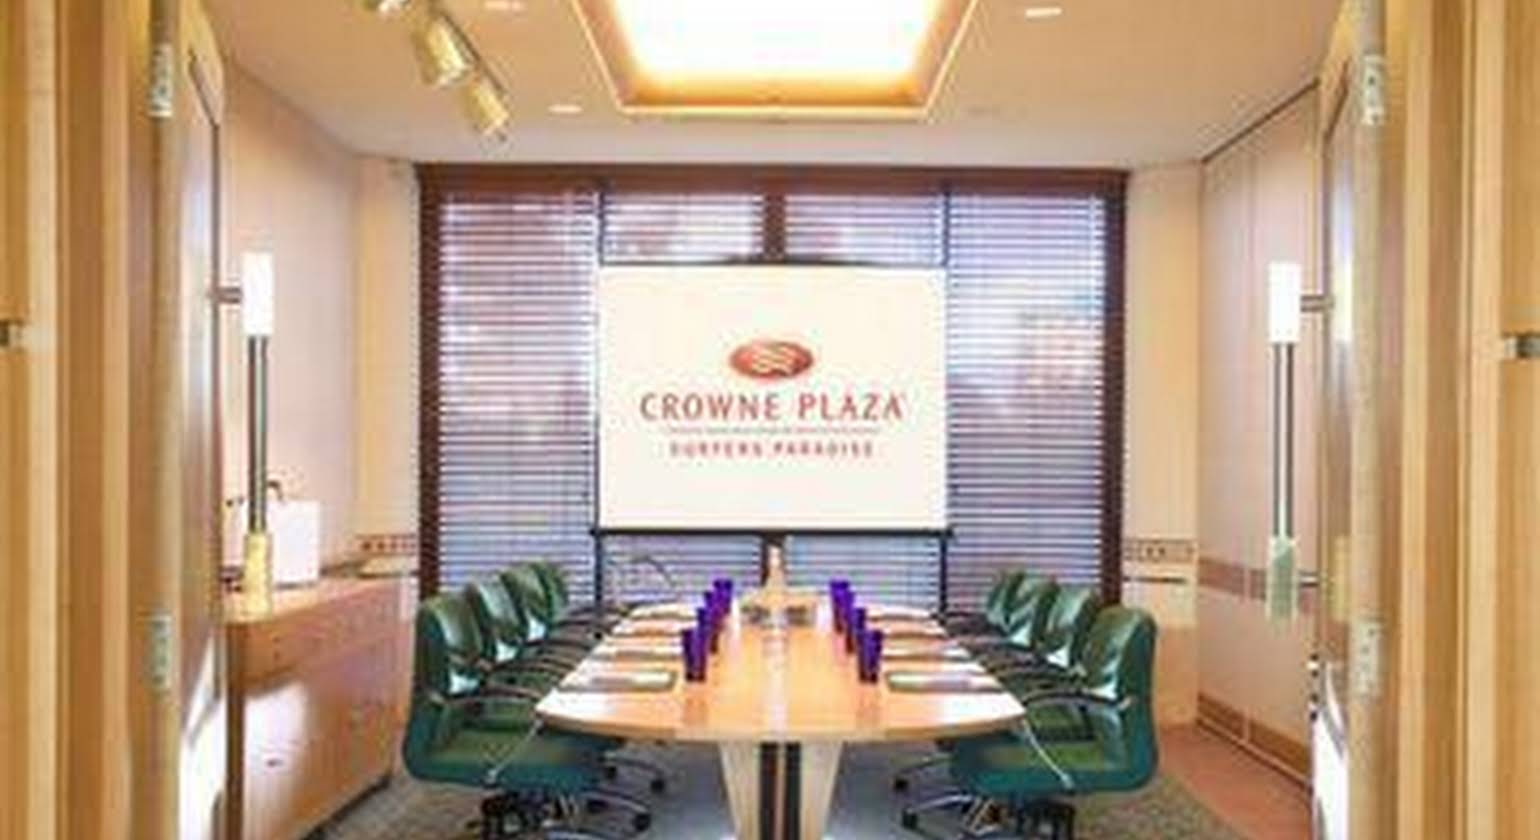 Crowne Plaza Gold Tower